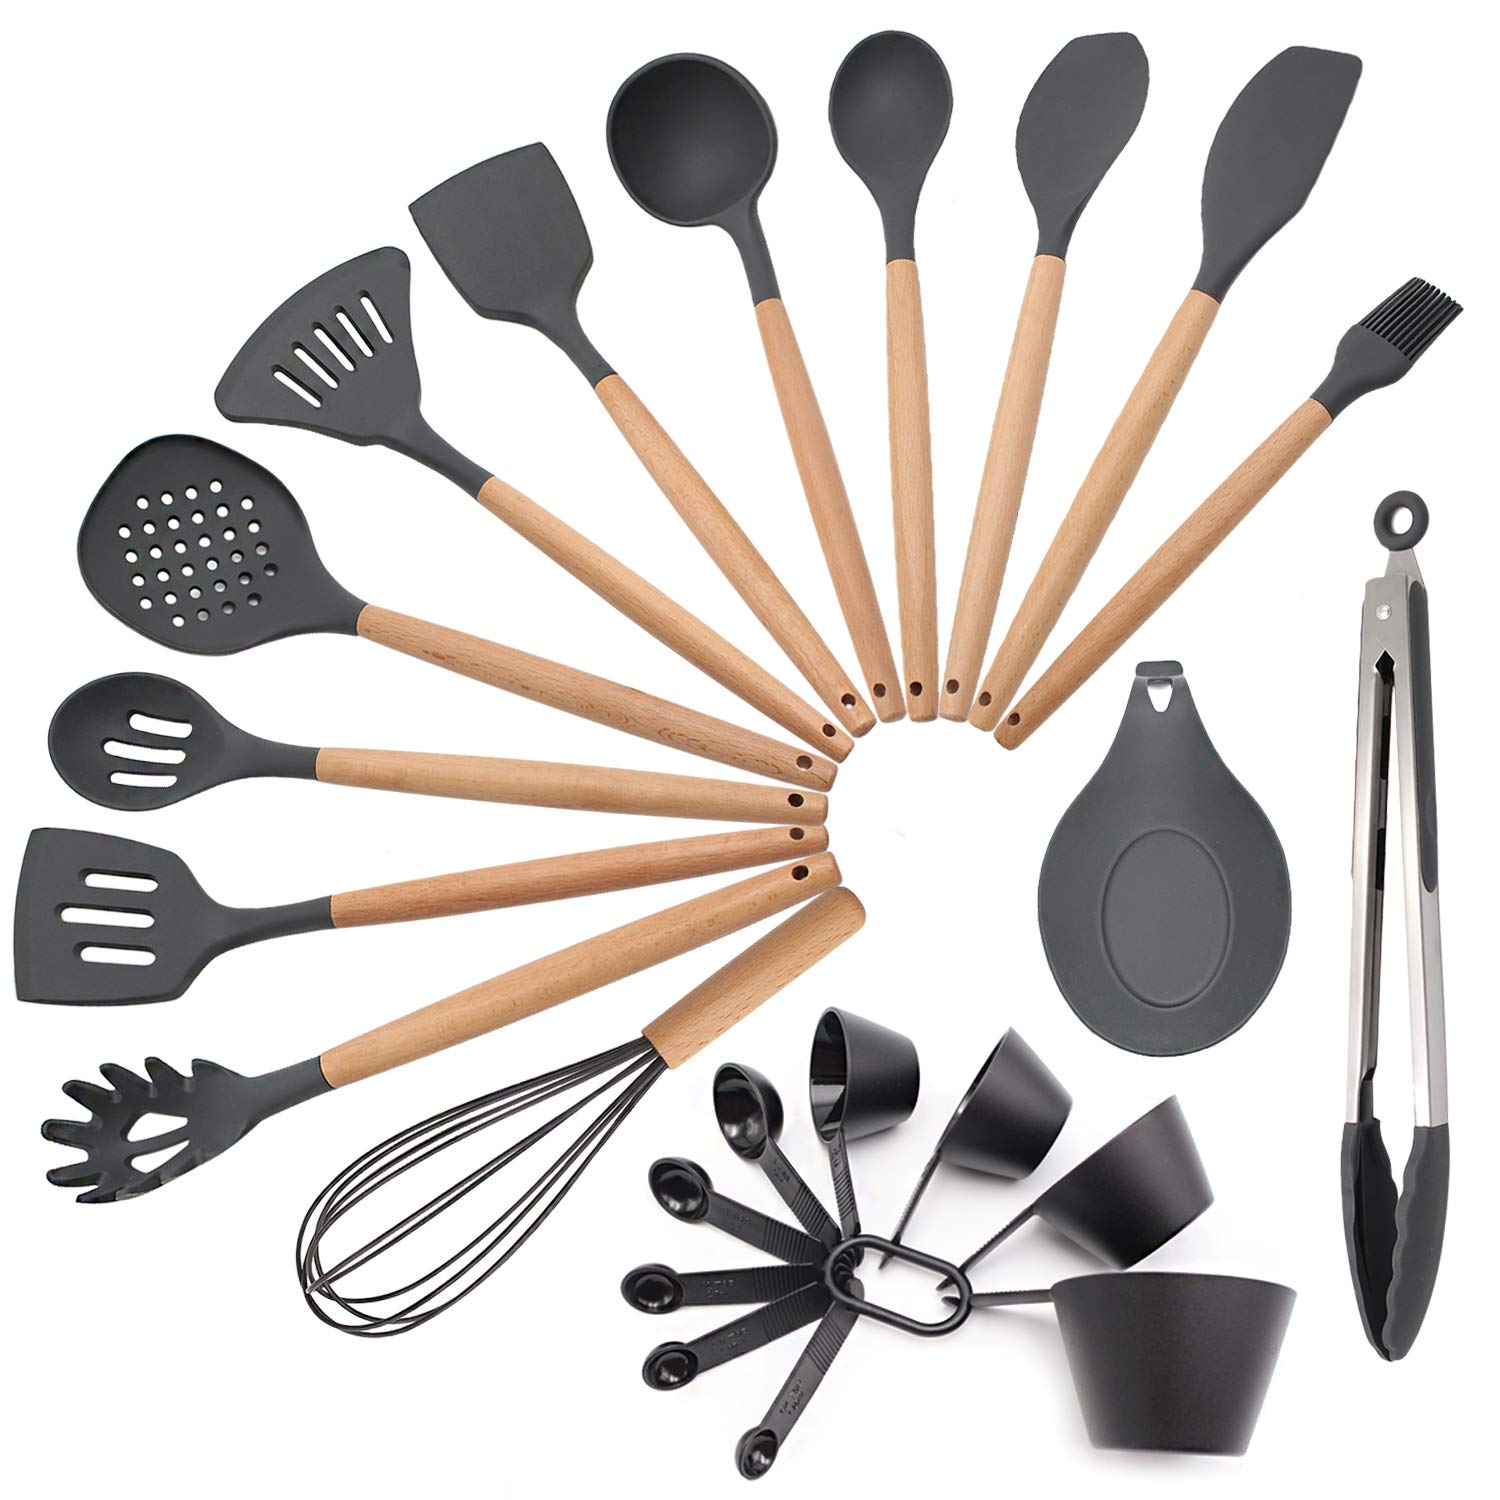 To encounter 23 Pieces Kitchen Utensil Set Silicone Cooking Utensils Kitchen Gadgets for Nonstick Cookware Set Wooden Handles BPA Free Non Toxic Silicone Turner Spatula Set - Hand Wash by To encounter